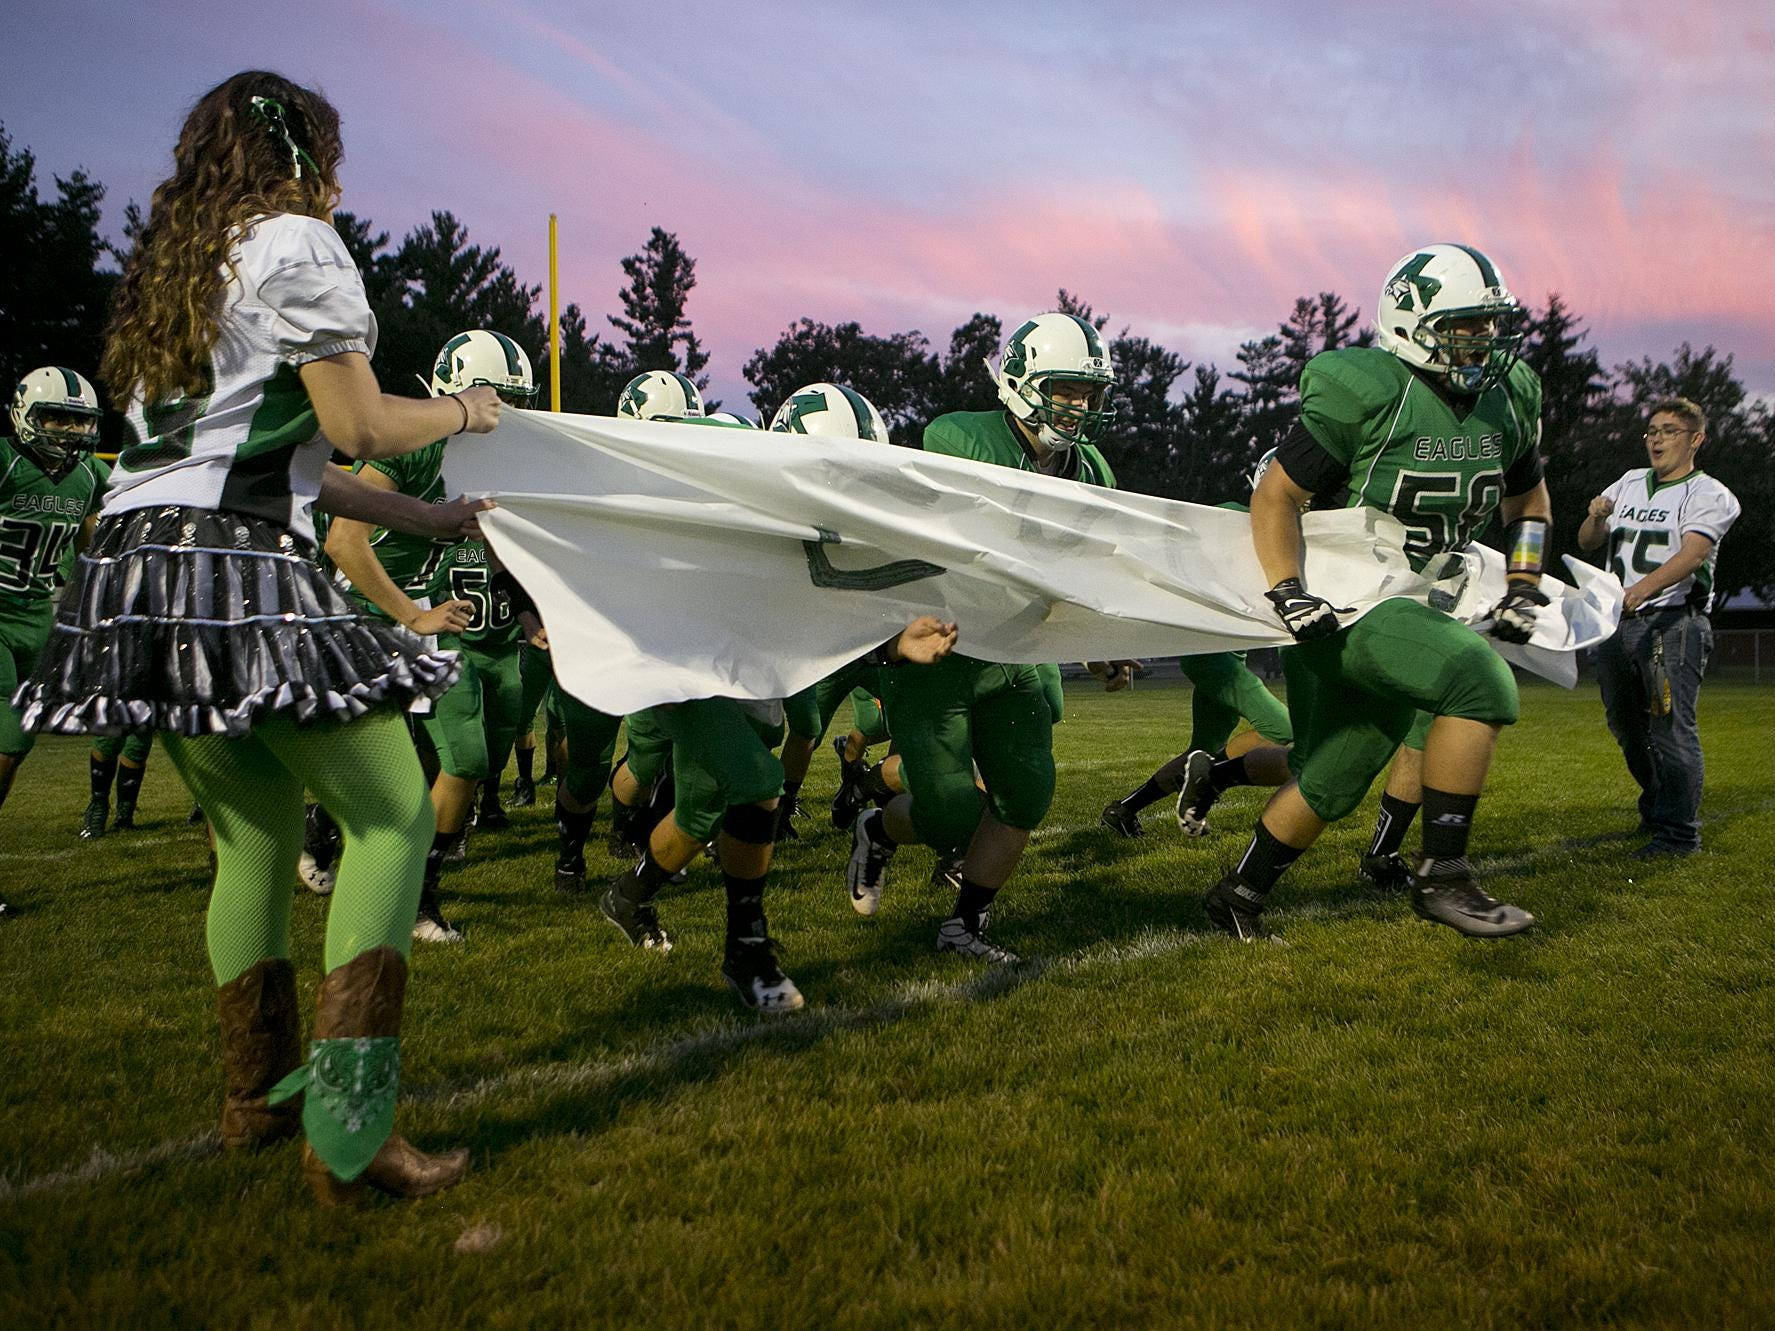 Almond-Bancroft's Cole Warzynski (58) leads the team onto the field for the Central Wisconsin Conference football game against Wild Rose in Almond, Friday, Sept. 25, 2015.